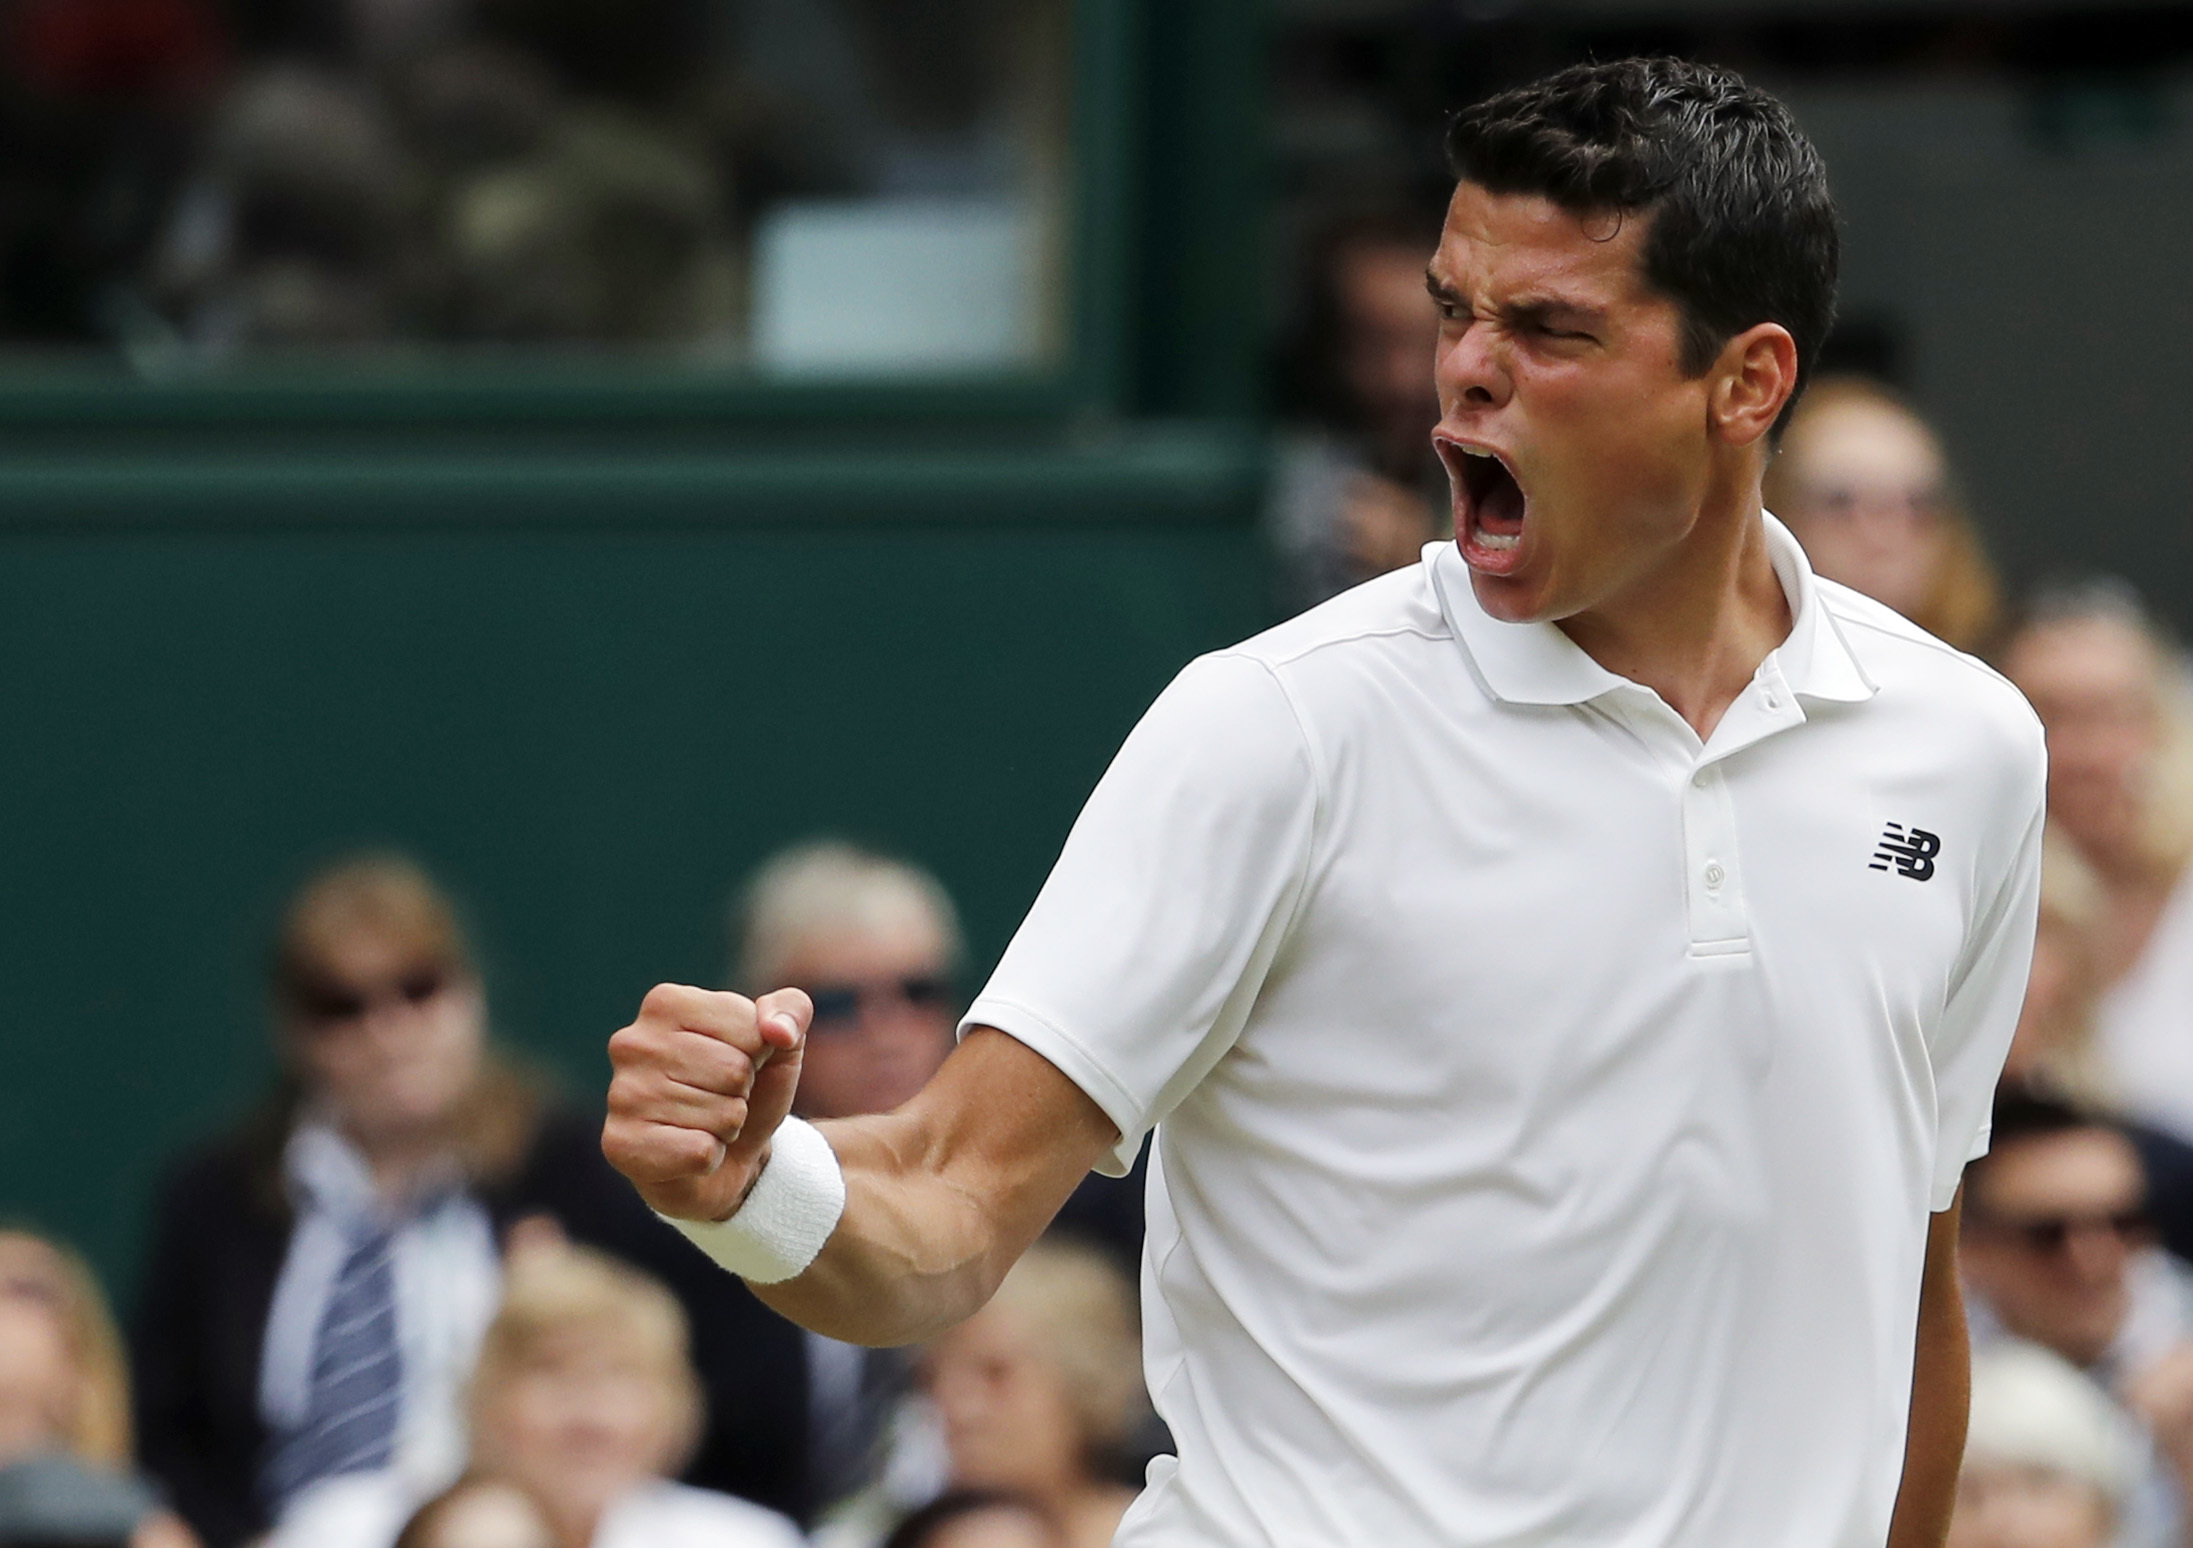 Milos Raonic of Canada celebrates a point against Roger Federer of Switzerland during their men's semifinal singles match on day twelve of the Wimbledon Tennis Championships in London, Friday, July 8, 2016. (AP Photo/Ben Curtis)